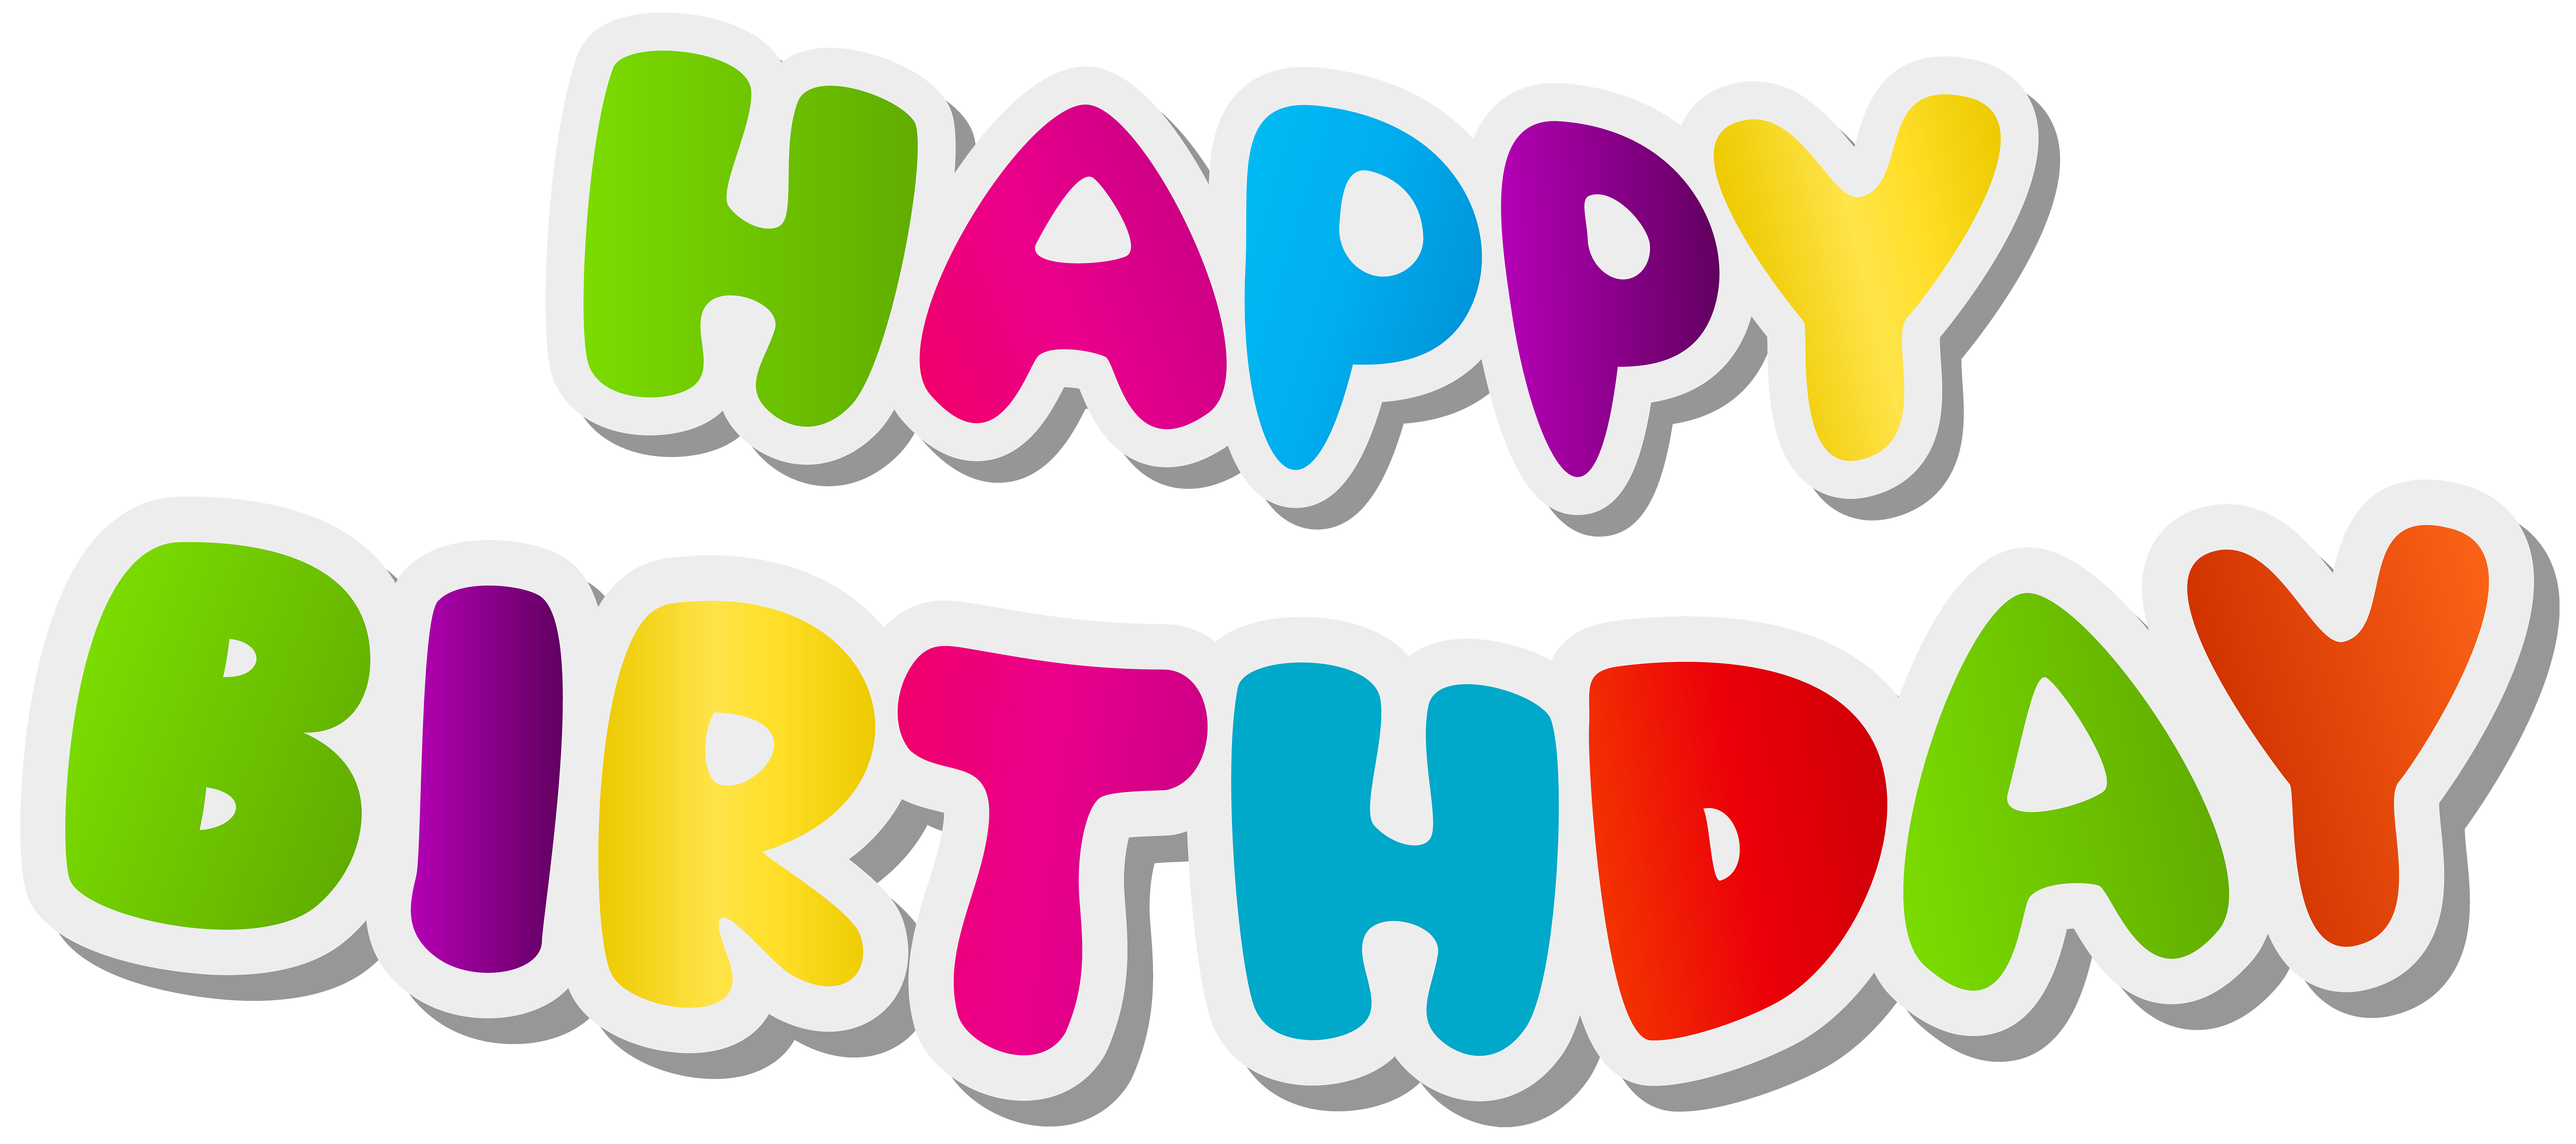 Name clipart happy birthday. Text png clip art